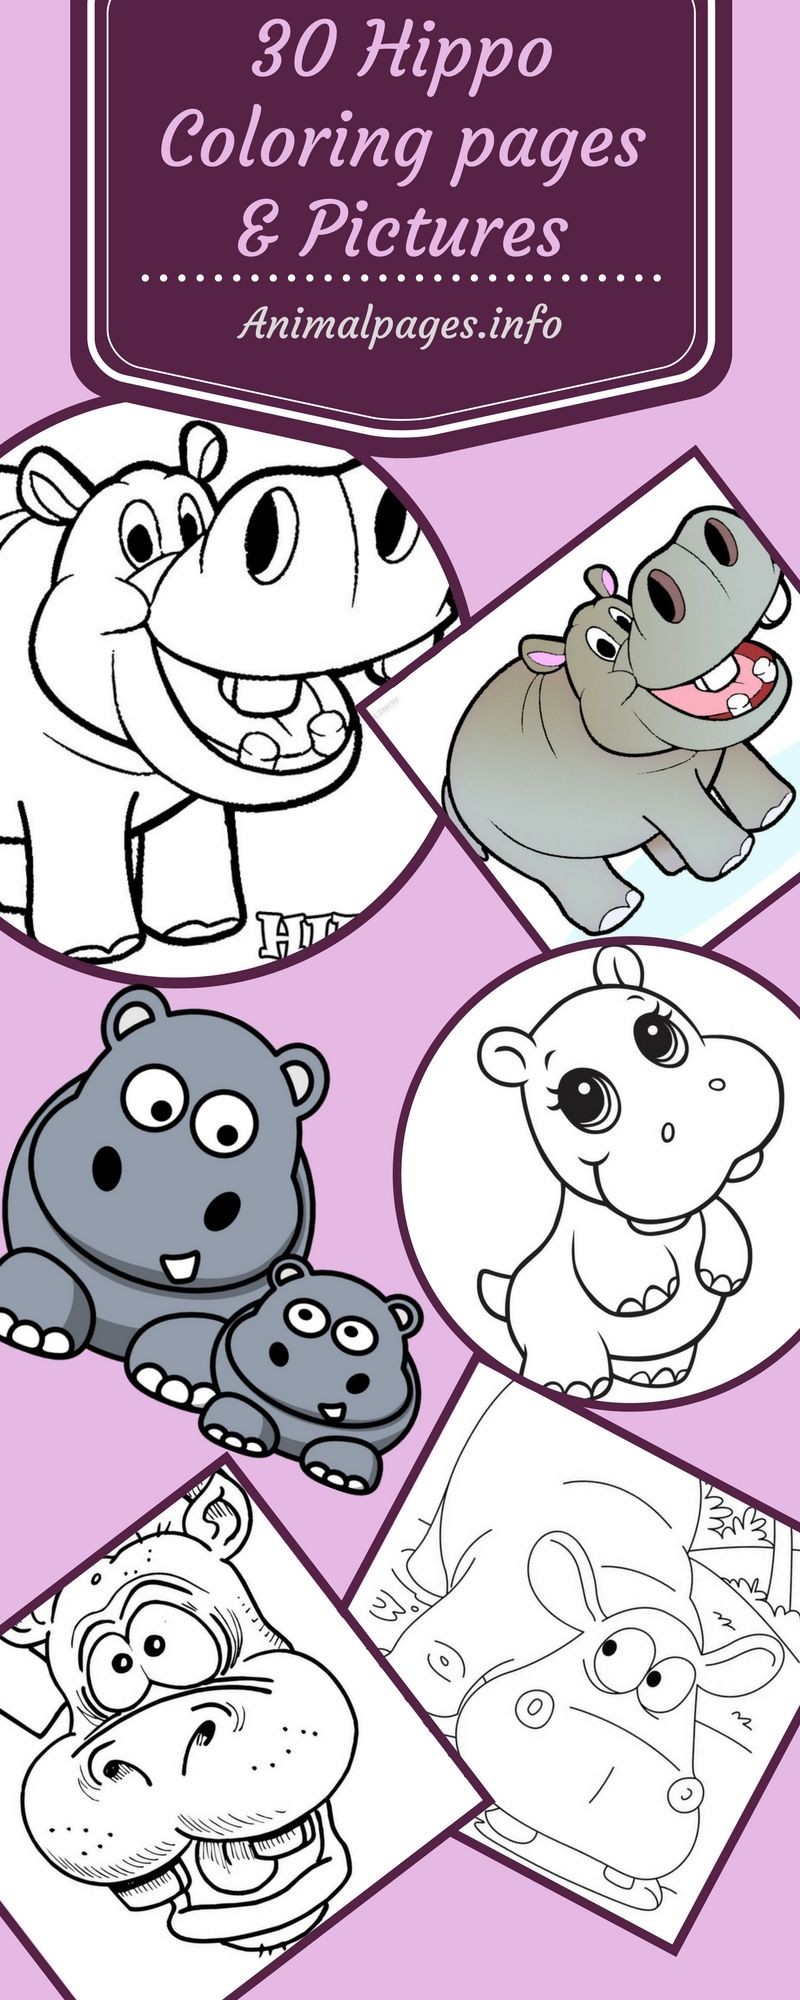 30 Hippopotamus Coloring Pages, Cliparts and Pictures: Cute Baby ...